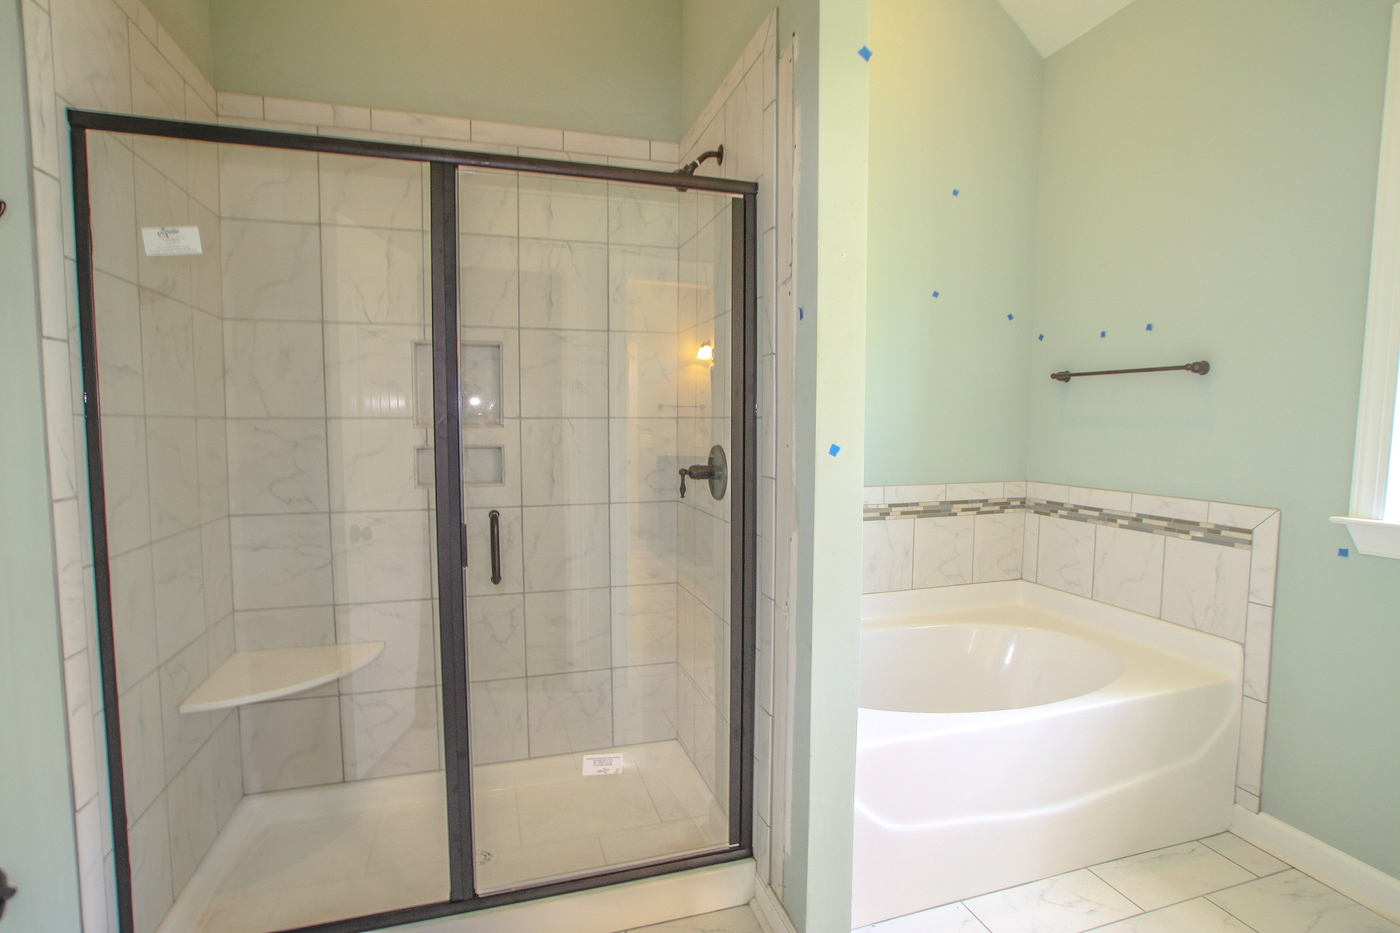 Am image of a green bathroom with shower and bath.